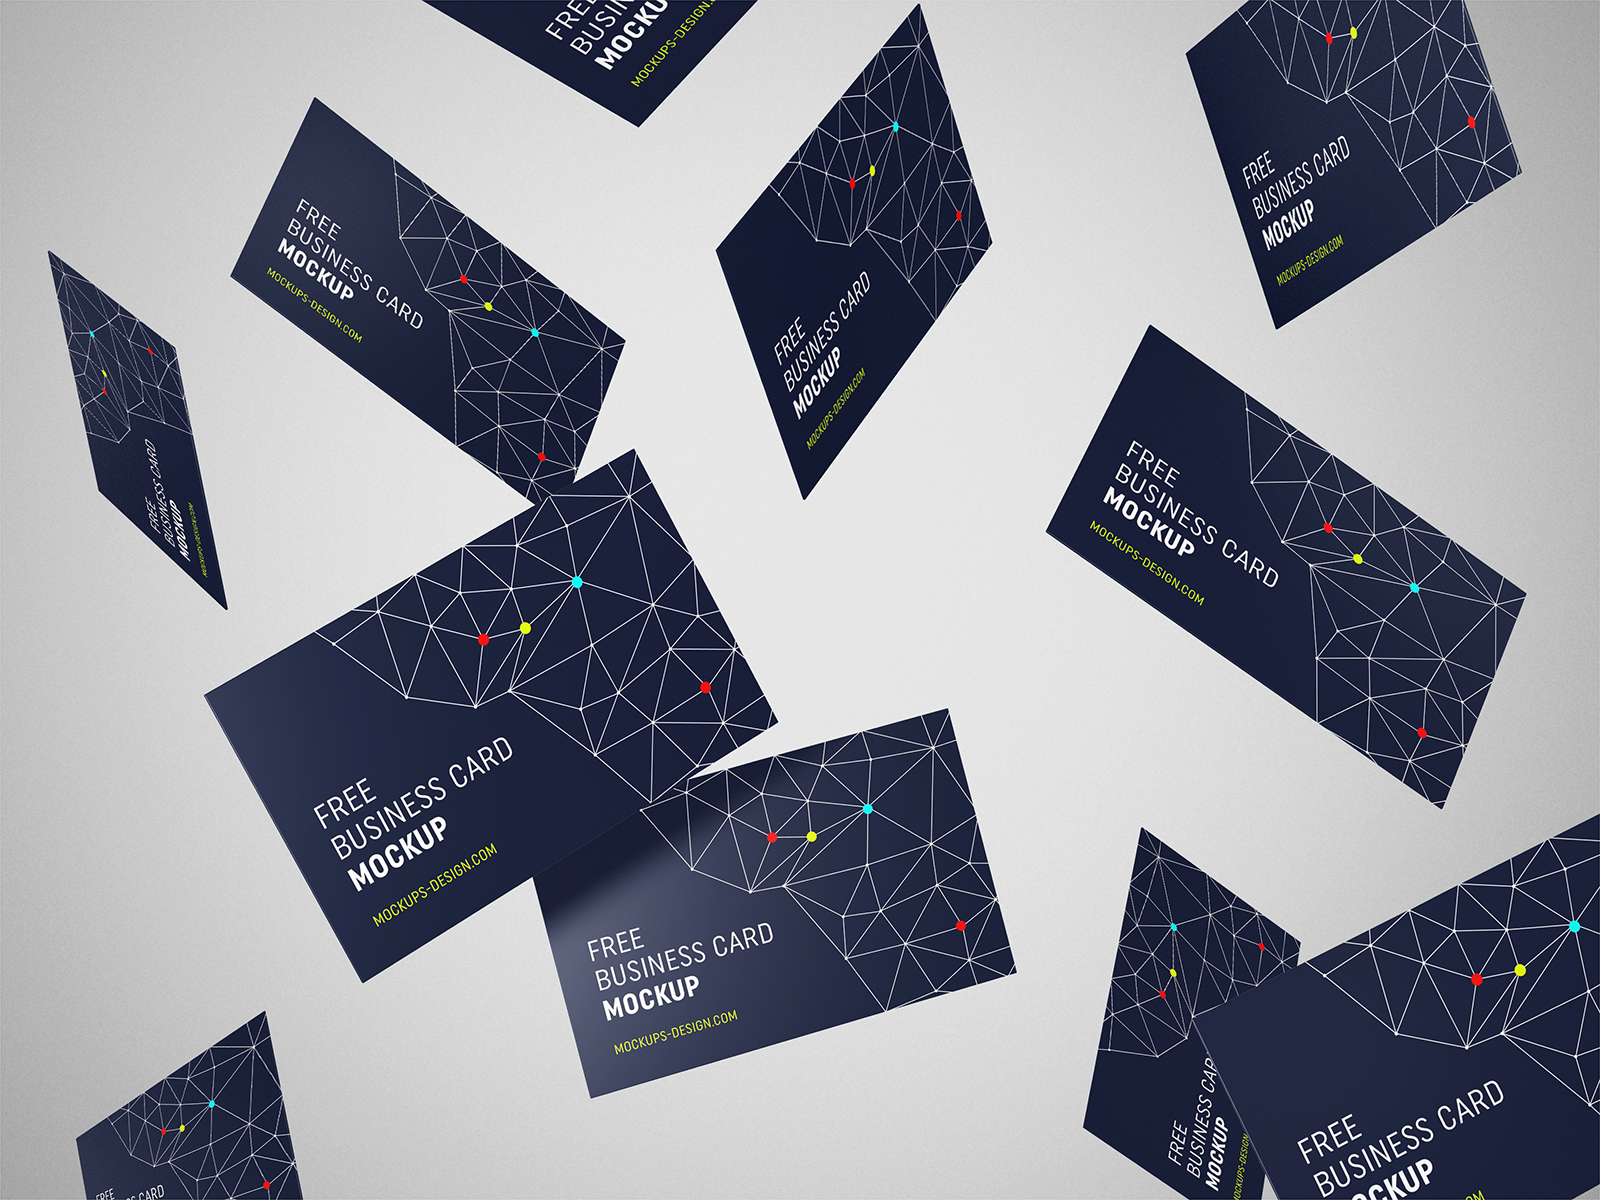 Free Flying Business Cards Mockup